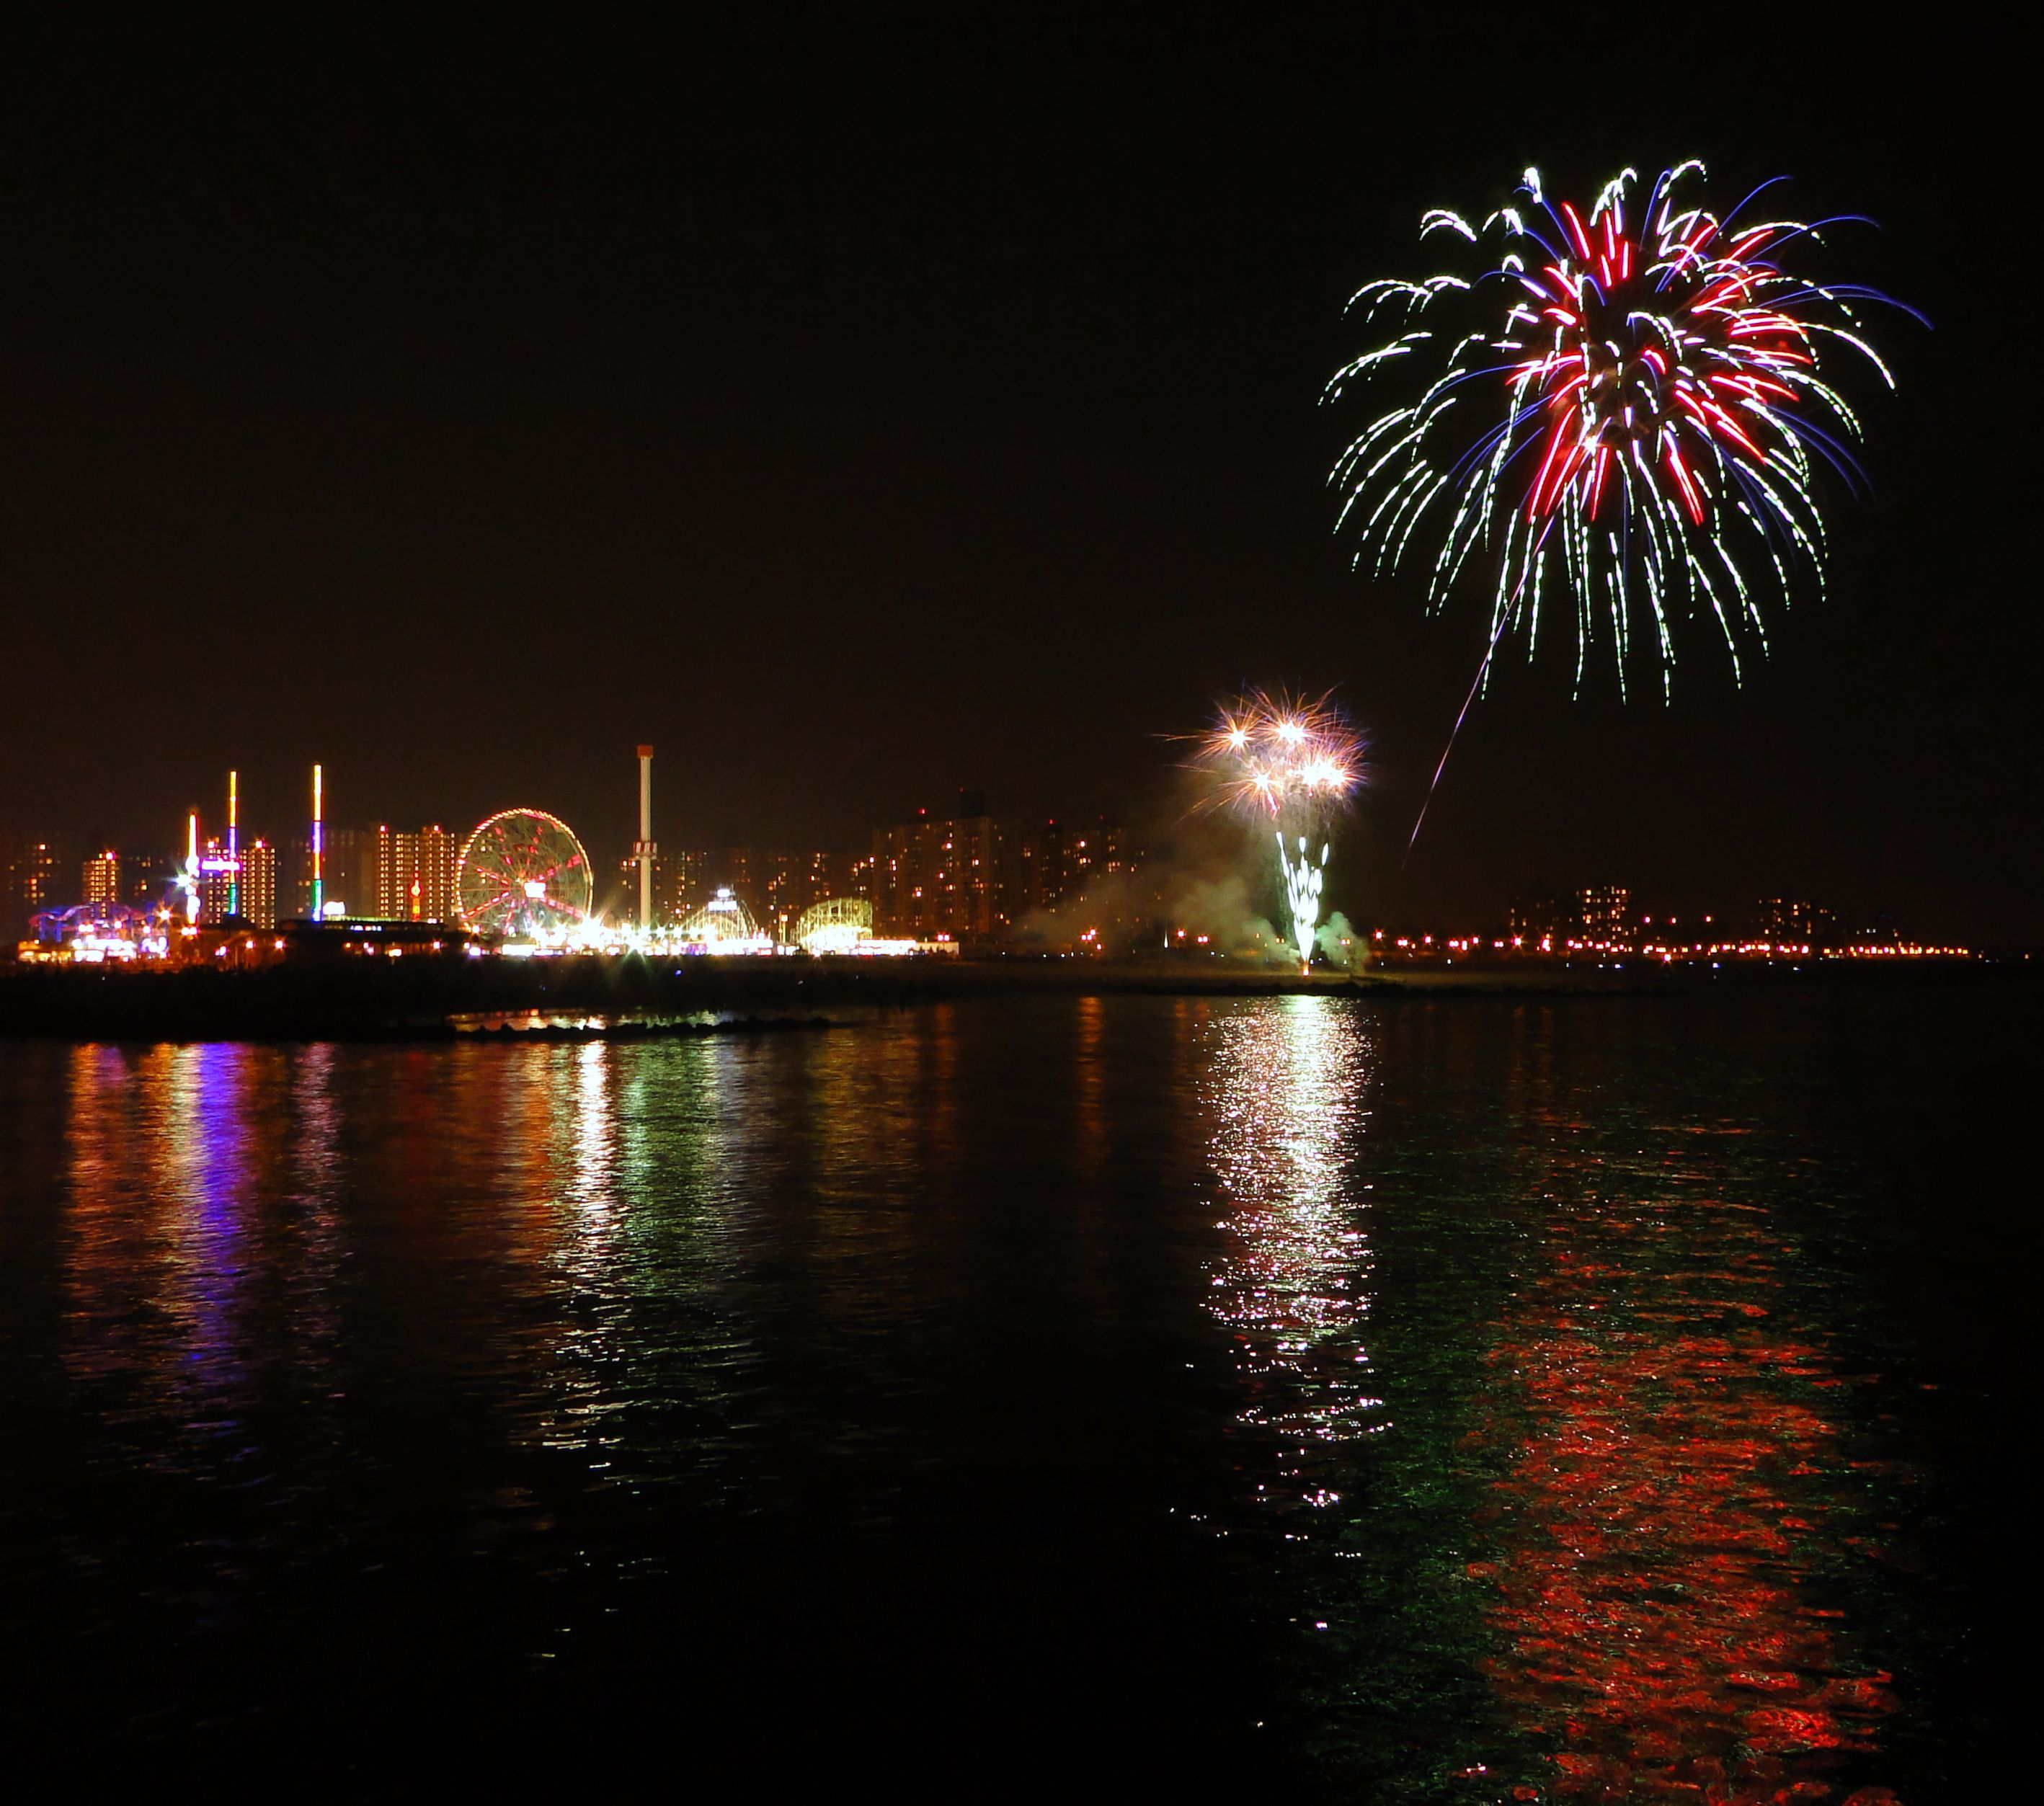 Coney Island Beach: Colorful Fireworks Over The Ocean At Coney Island (beach